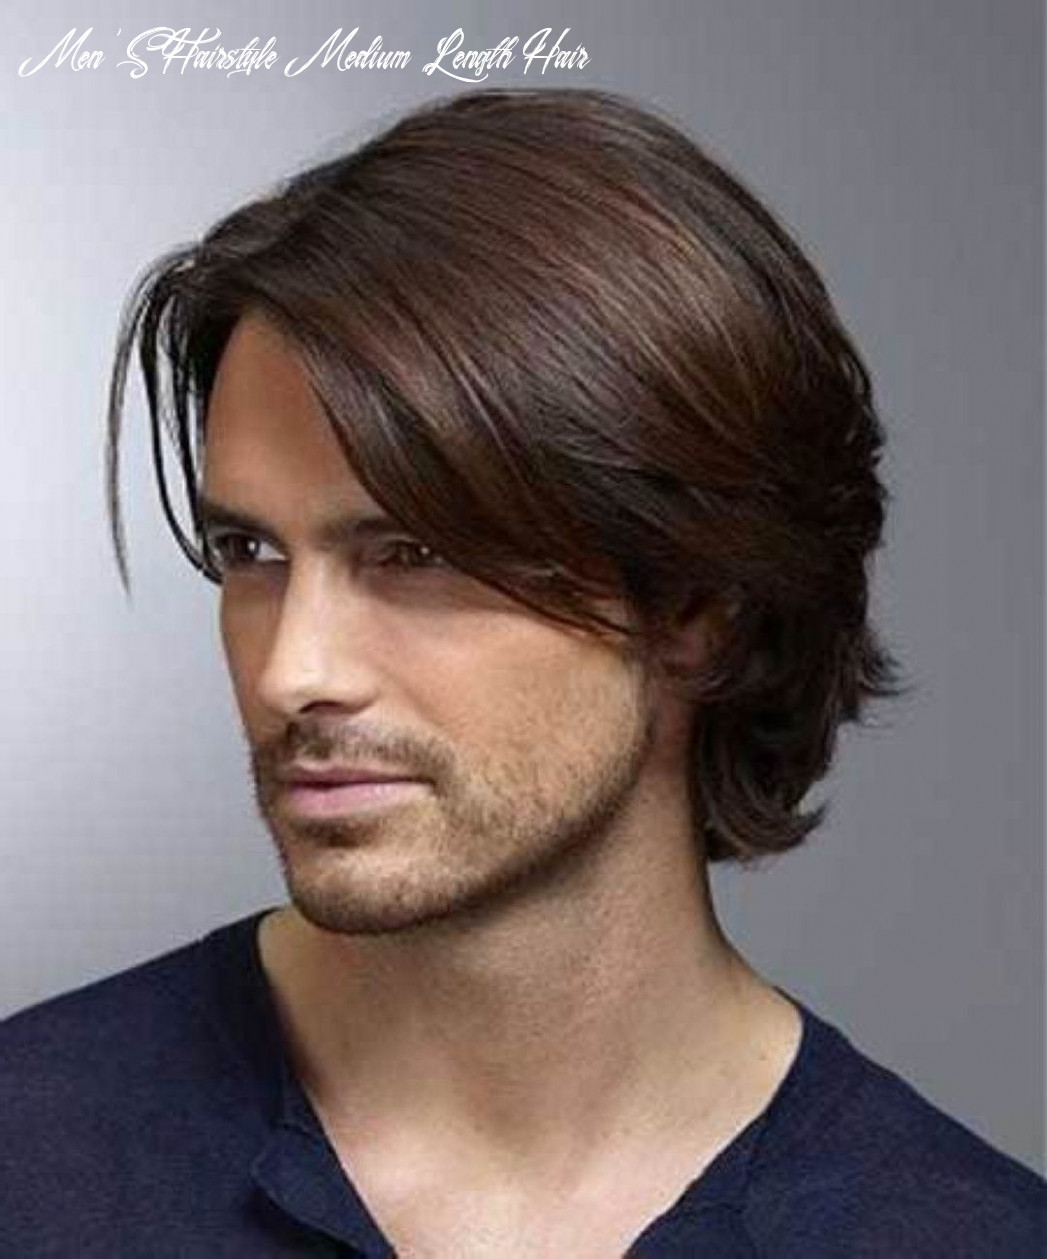 Hairstyle for medium length hair for men 10 images about men